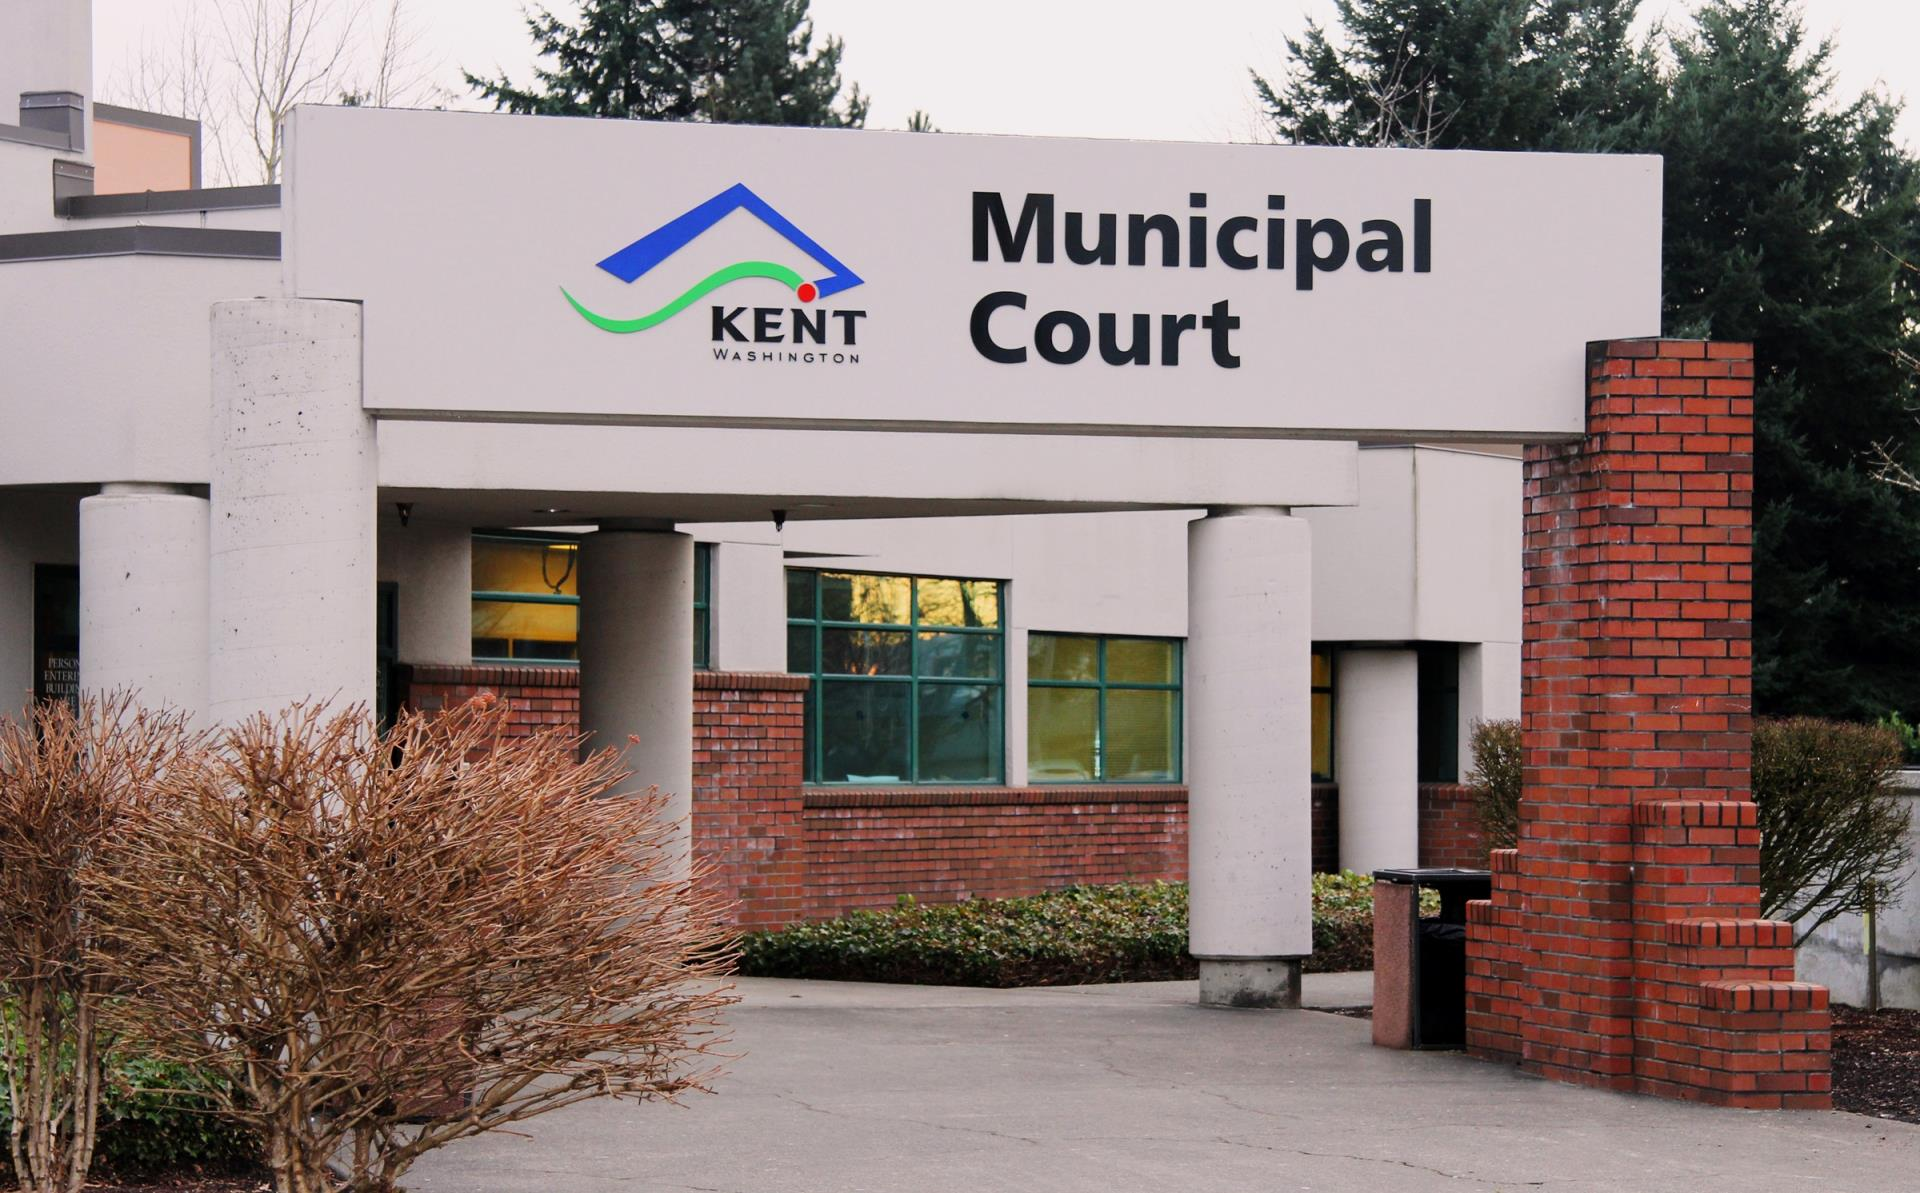 Municipal Court | City of Kent